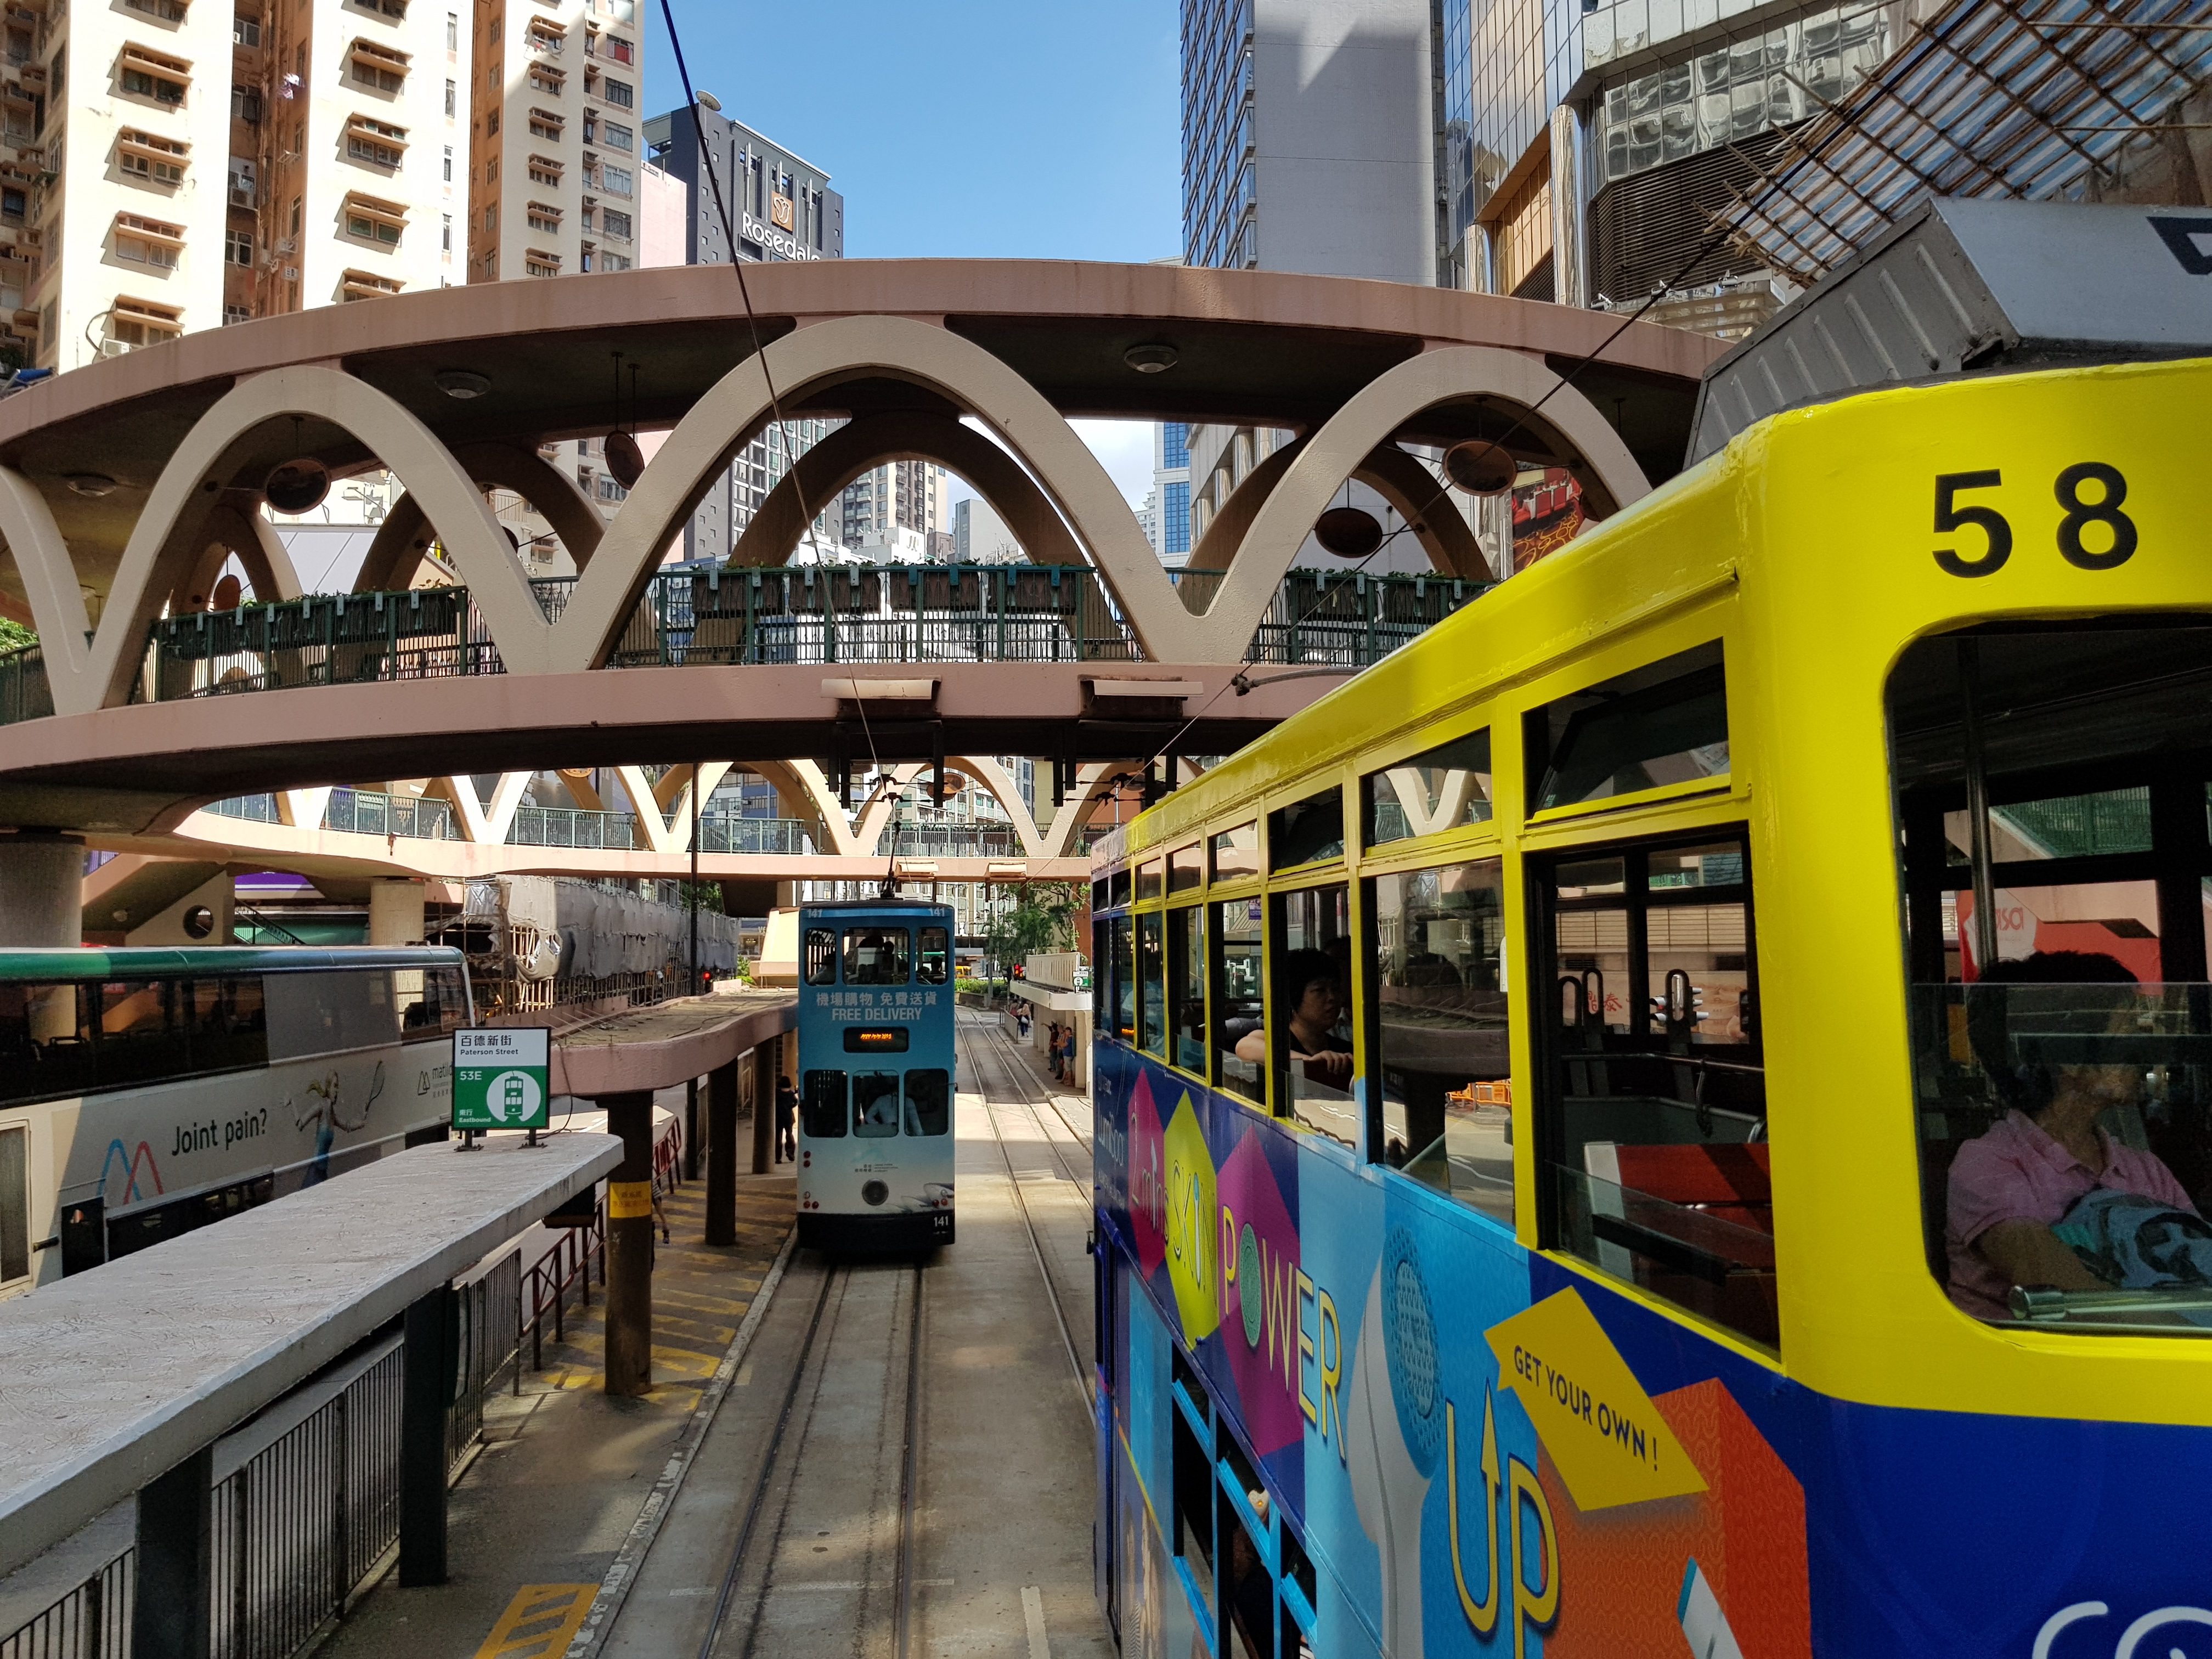 The Tram in Hong Kong Central